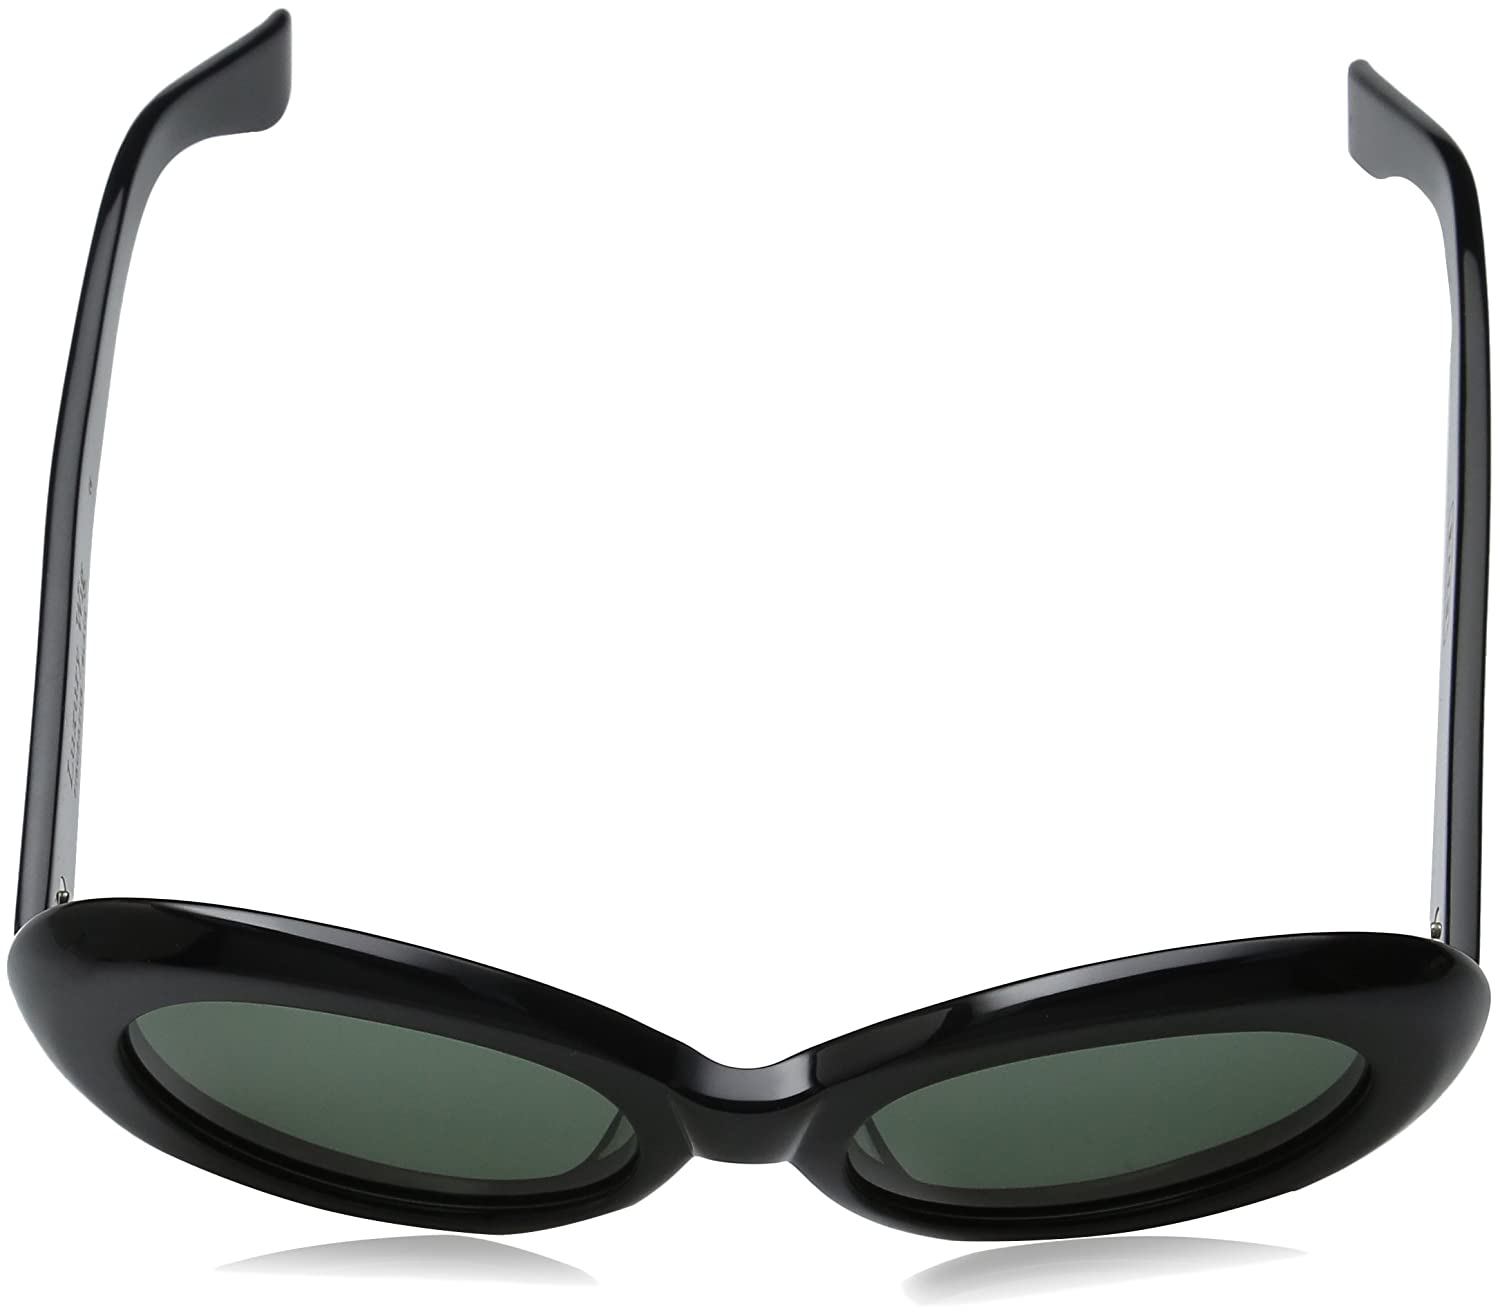 7ad1875fe11 Amazon.com  RAEN Optics Unisex Figurative Black One Size  Clothing